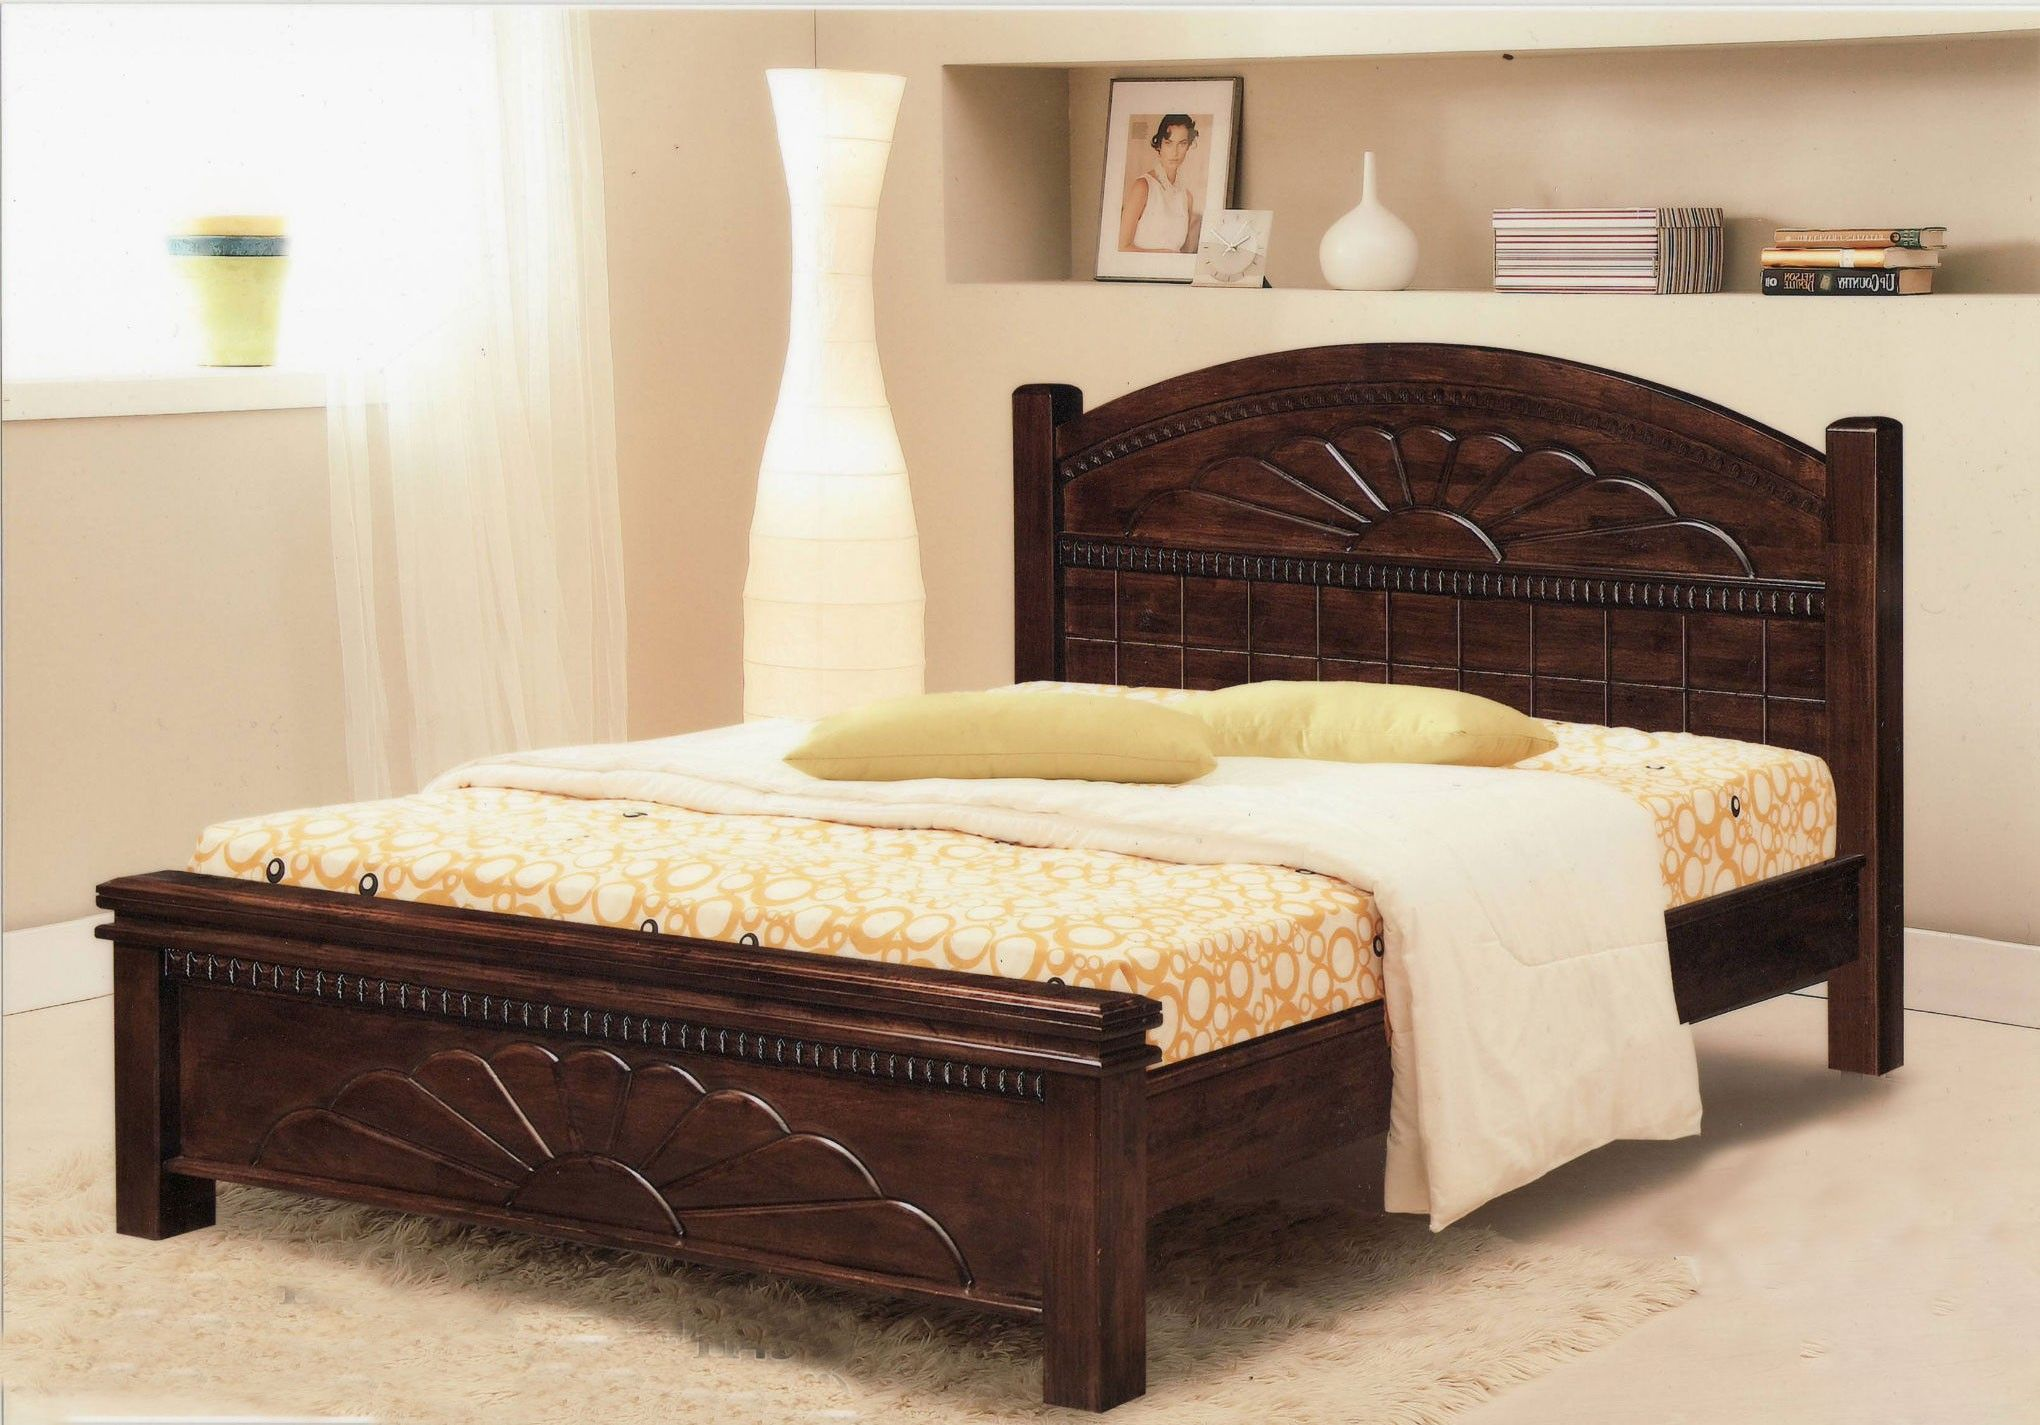 simple double bed designs in wood - HD2040×1425